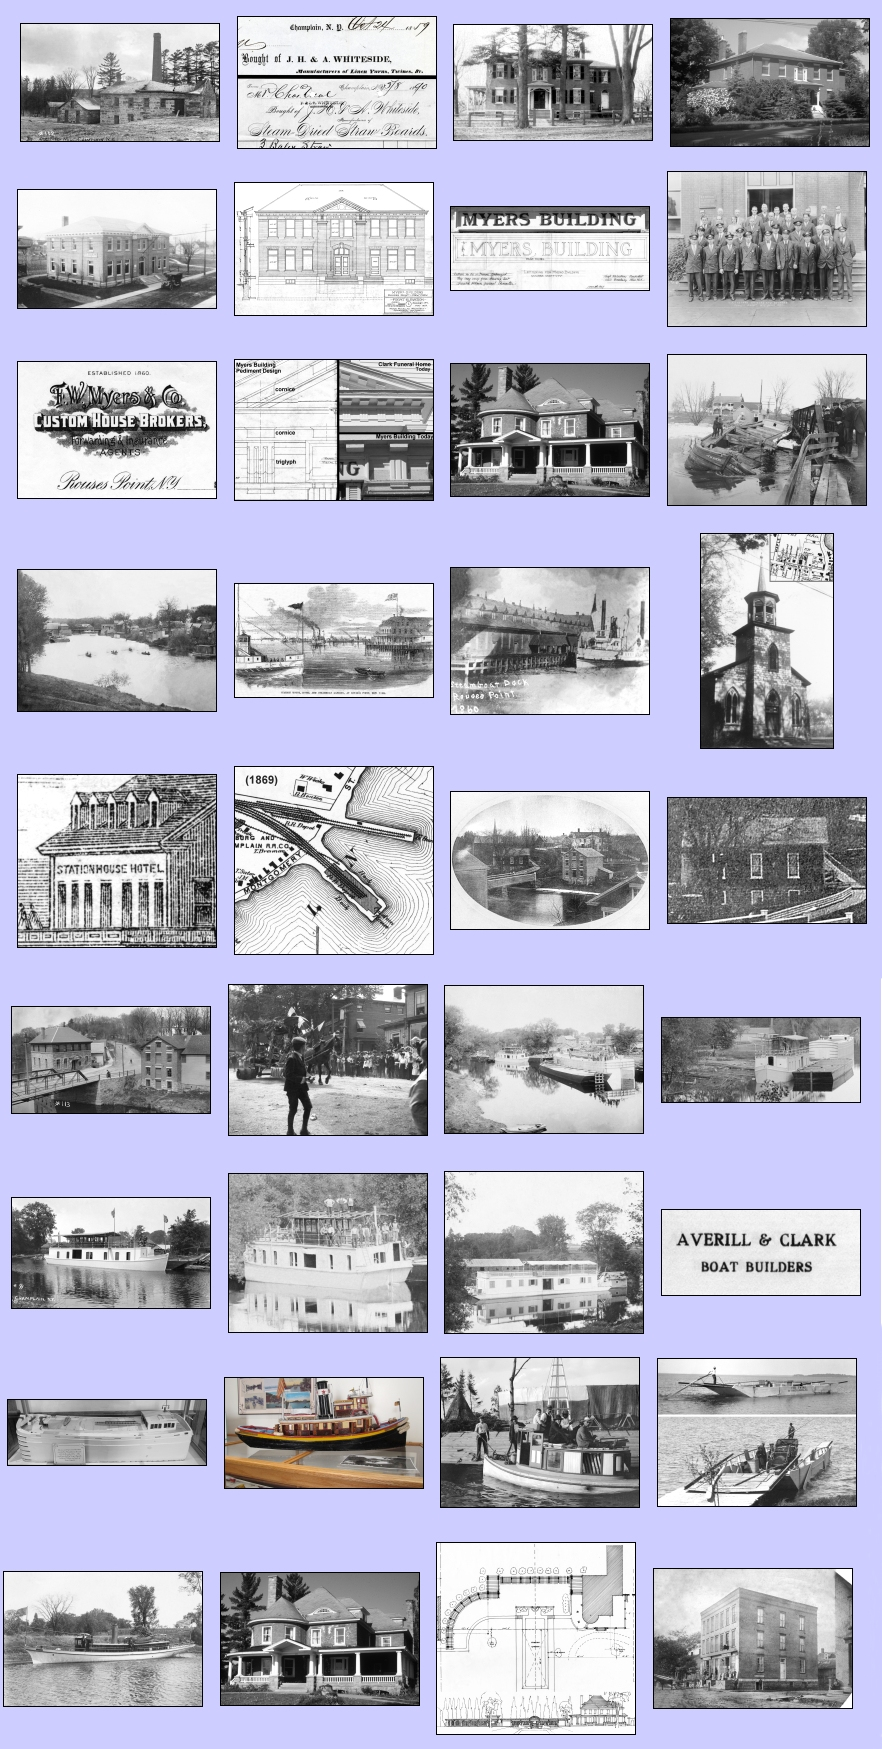 2012 champlain historic calendar images used